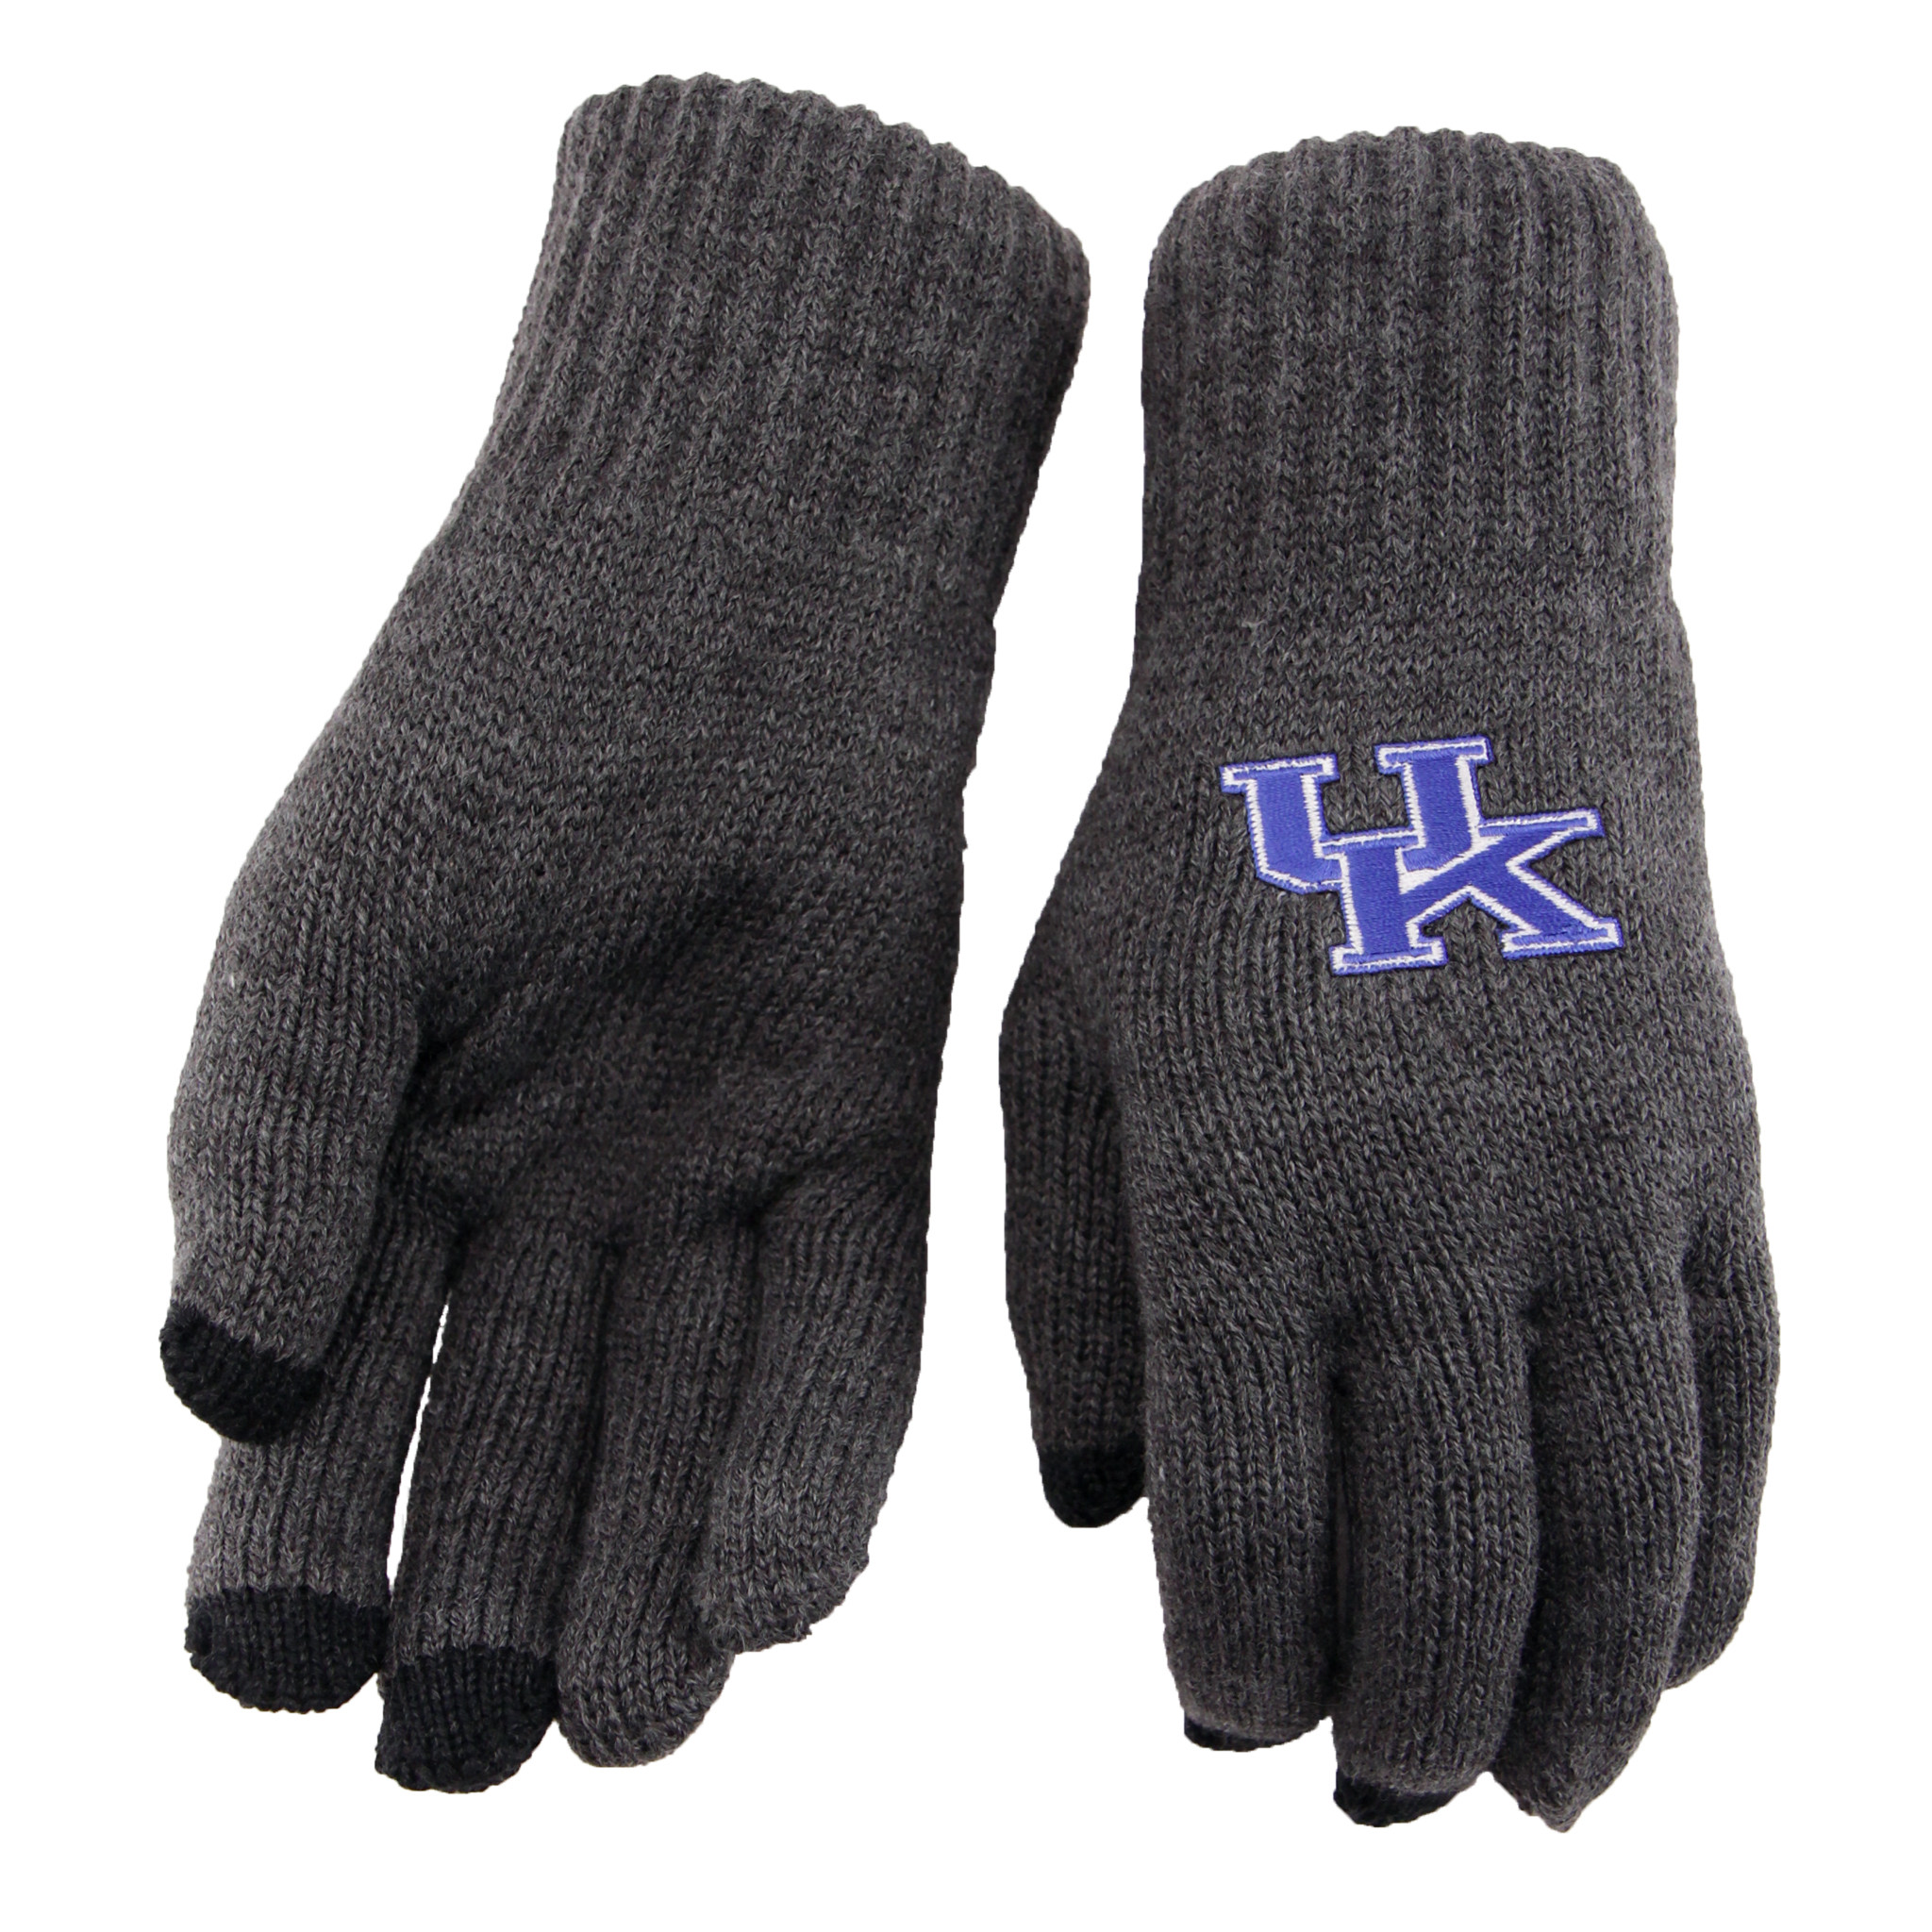 University of Kentucky Smart-Touch Gloves (large)